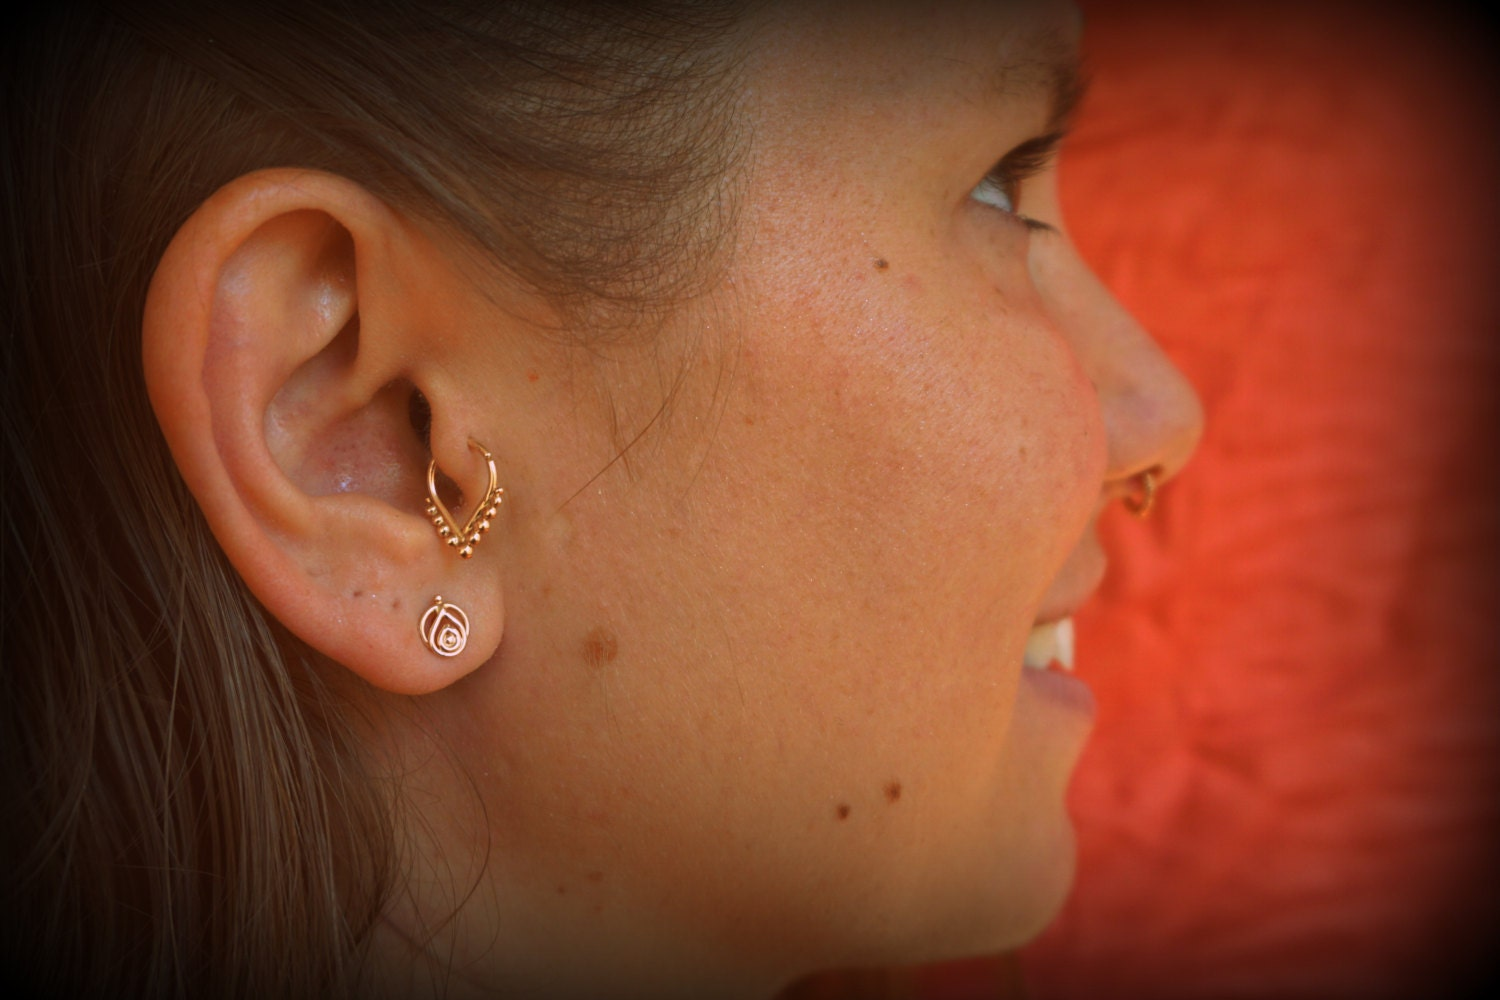 Tragus ring gold tragus earring tragus jewelry tragus